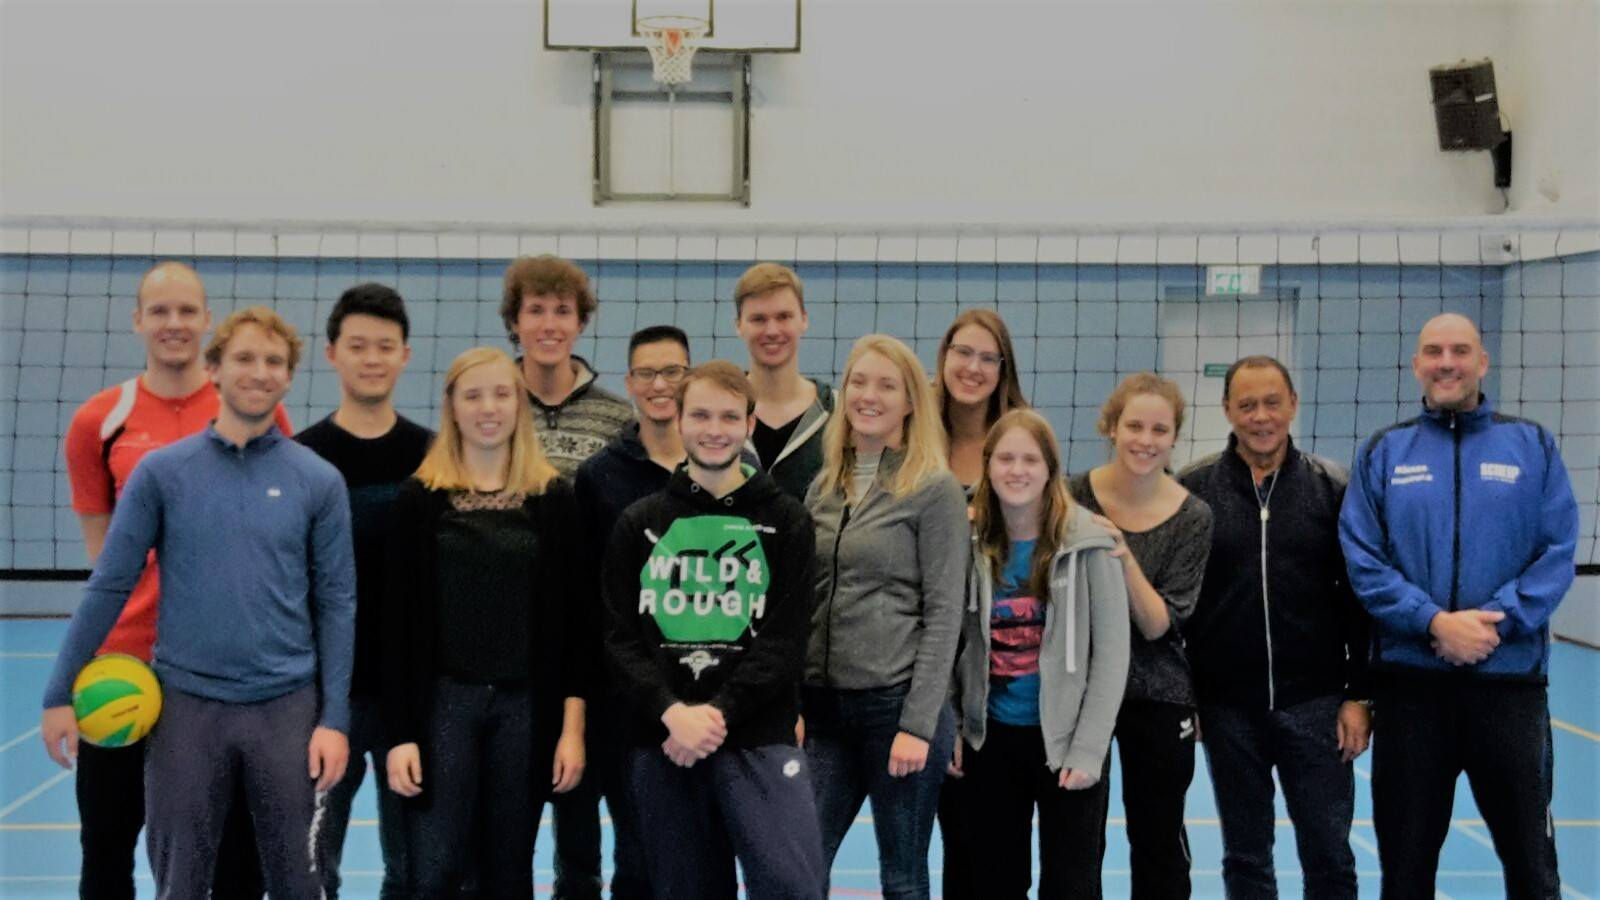 Coachclinic Scherp Volleybal